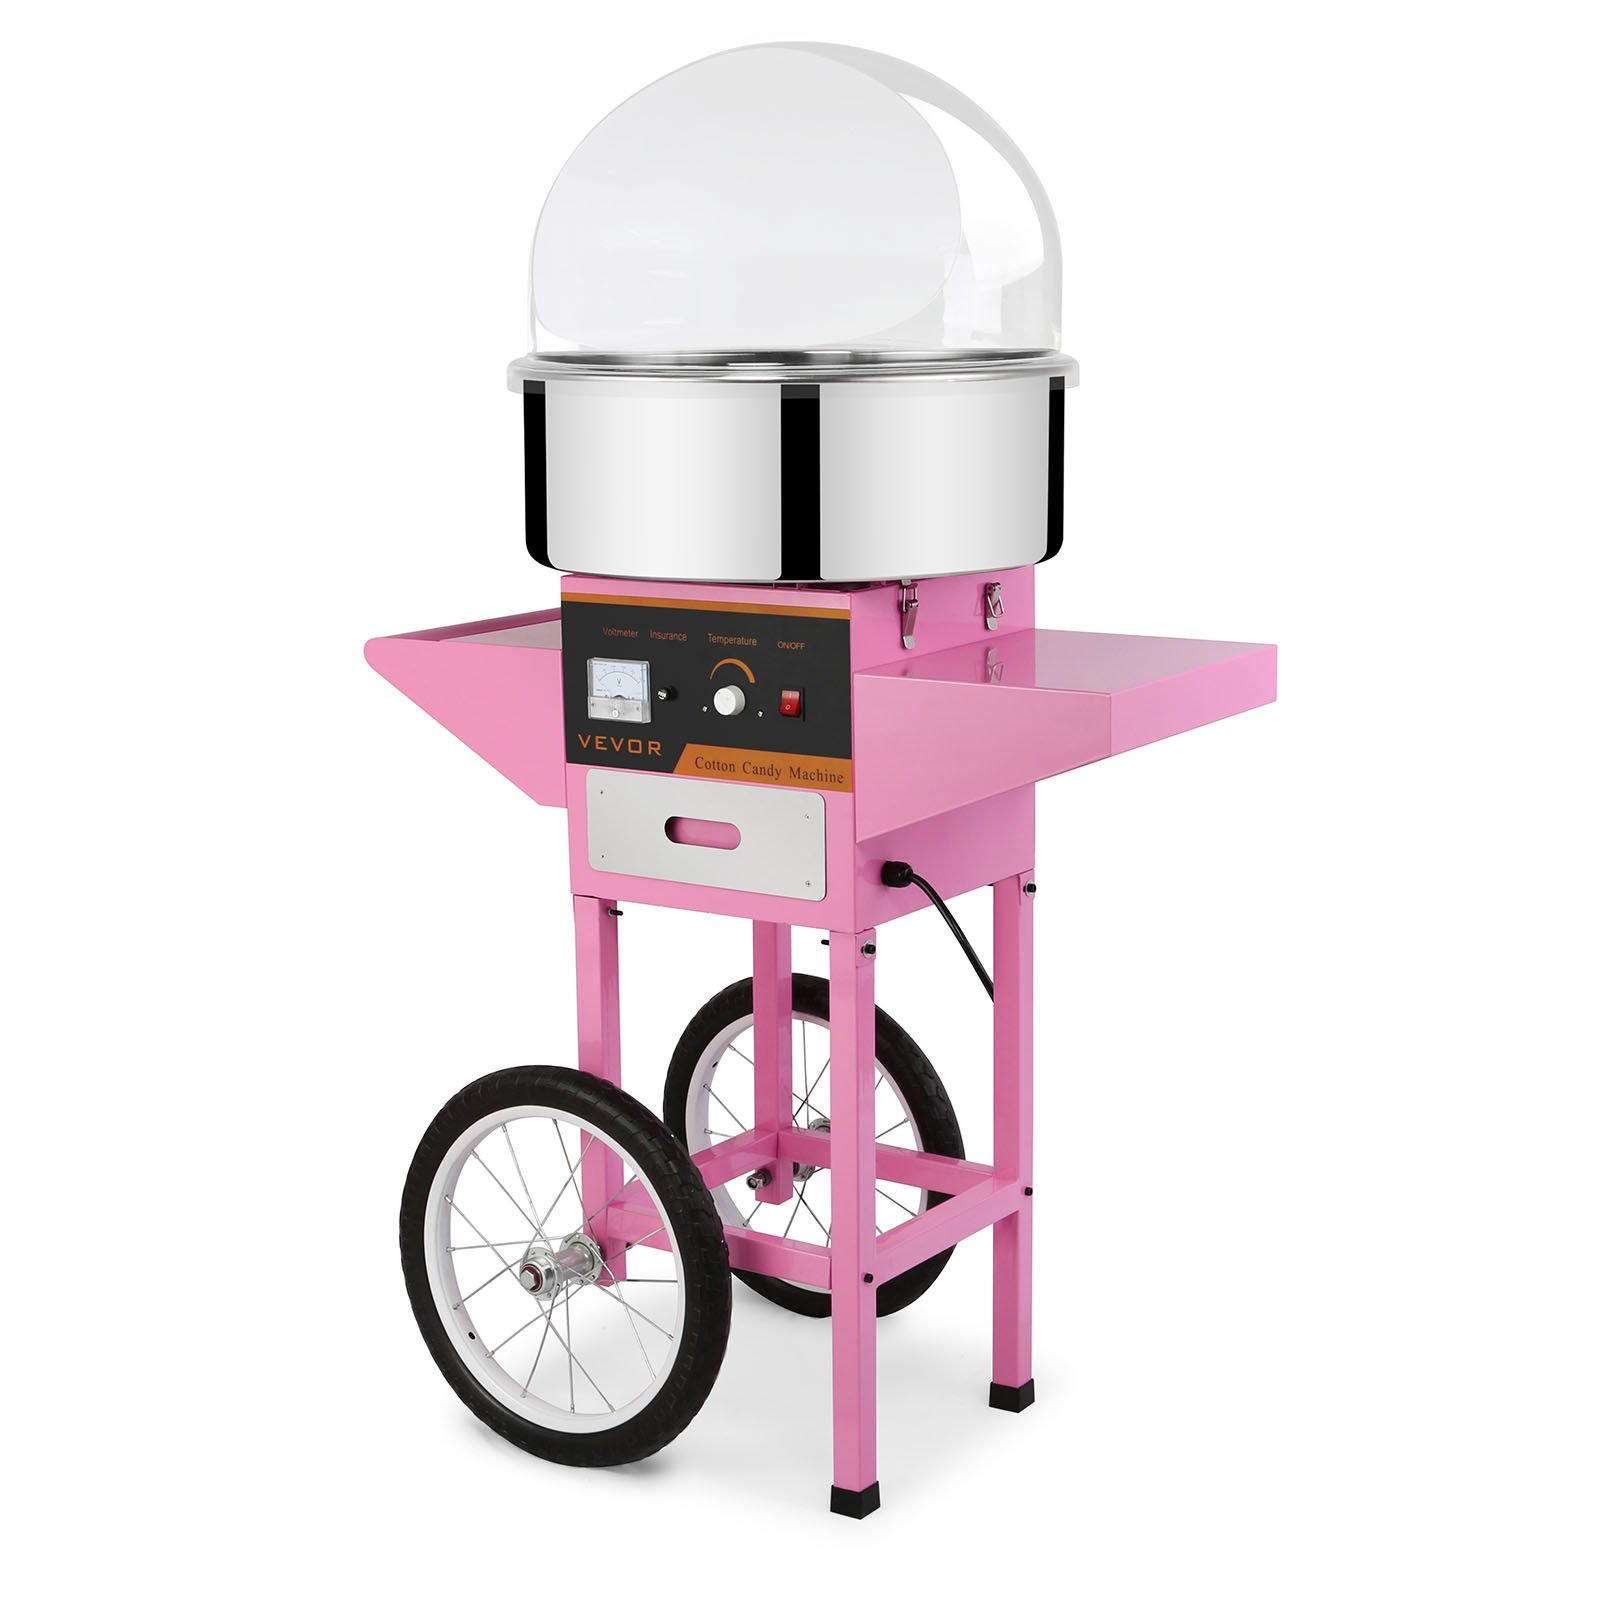 Mophorn Electric Cotton Candy Machine with Bubble Shield and Cart Commercial Cotton Candy Machine Kit 110V Perfect for Various Parties (Cotton Candy Machine with Bubble Shield and Cart)